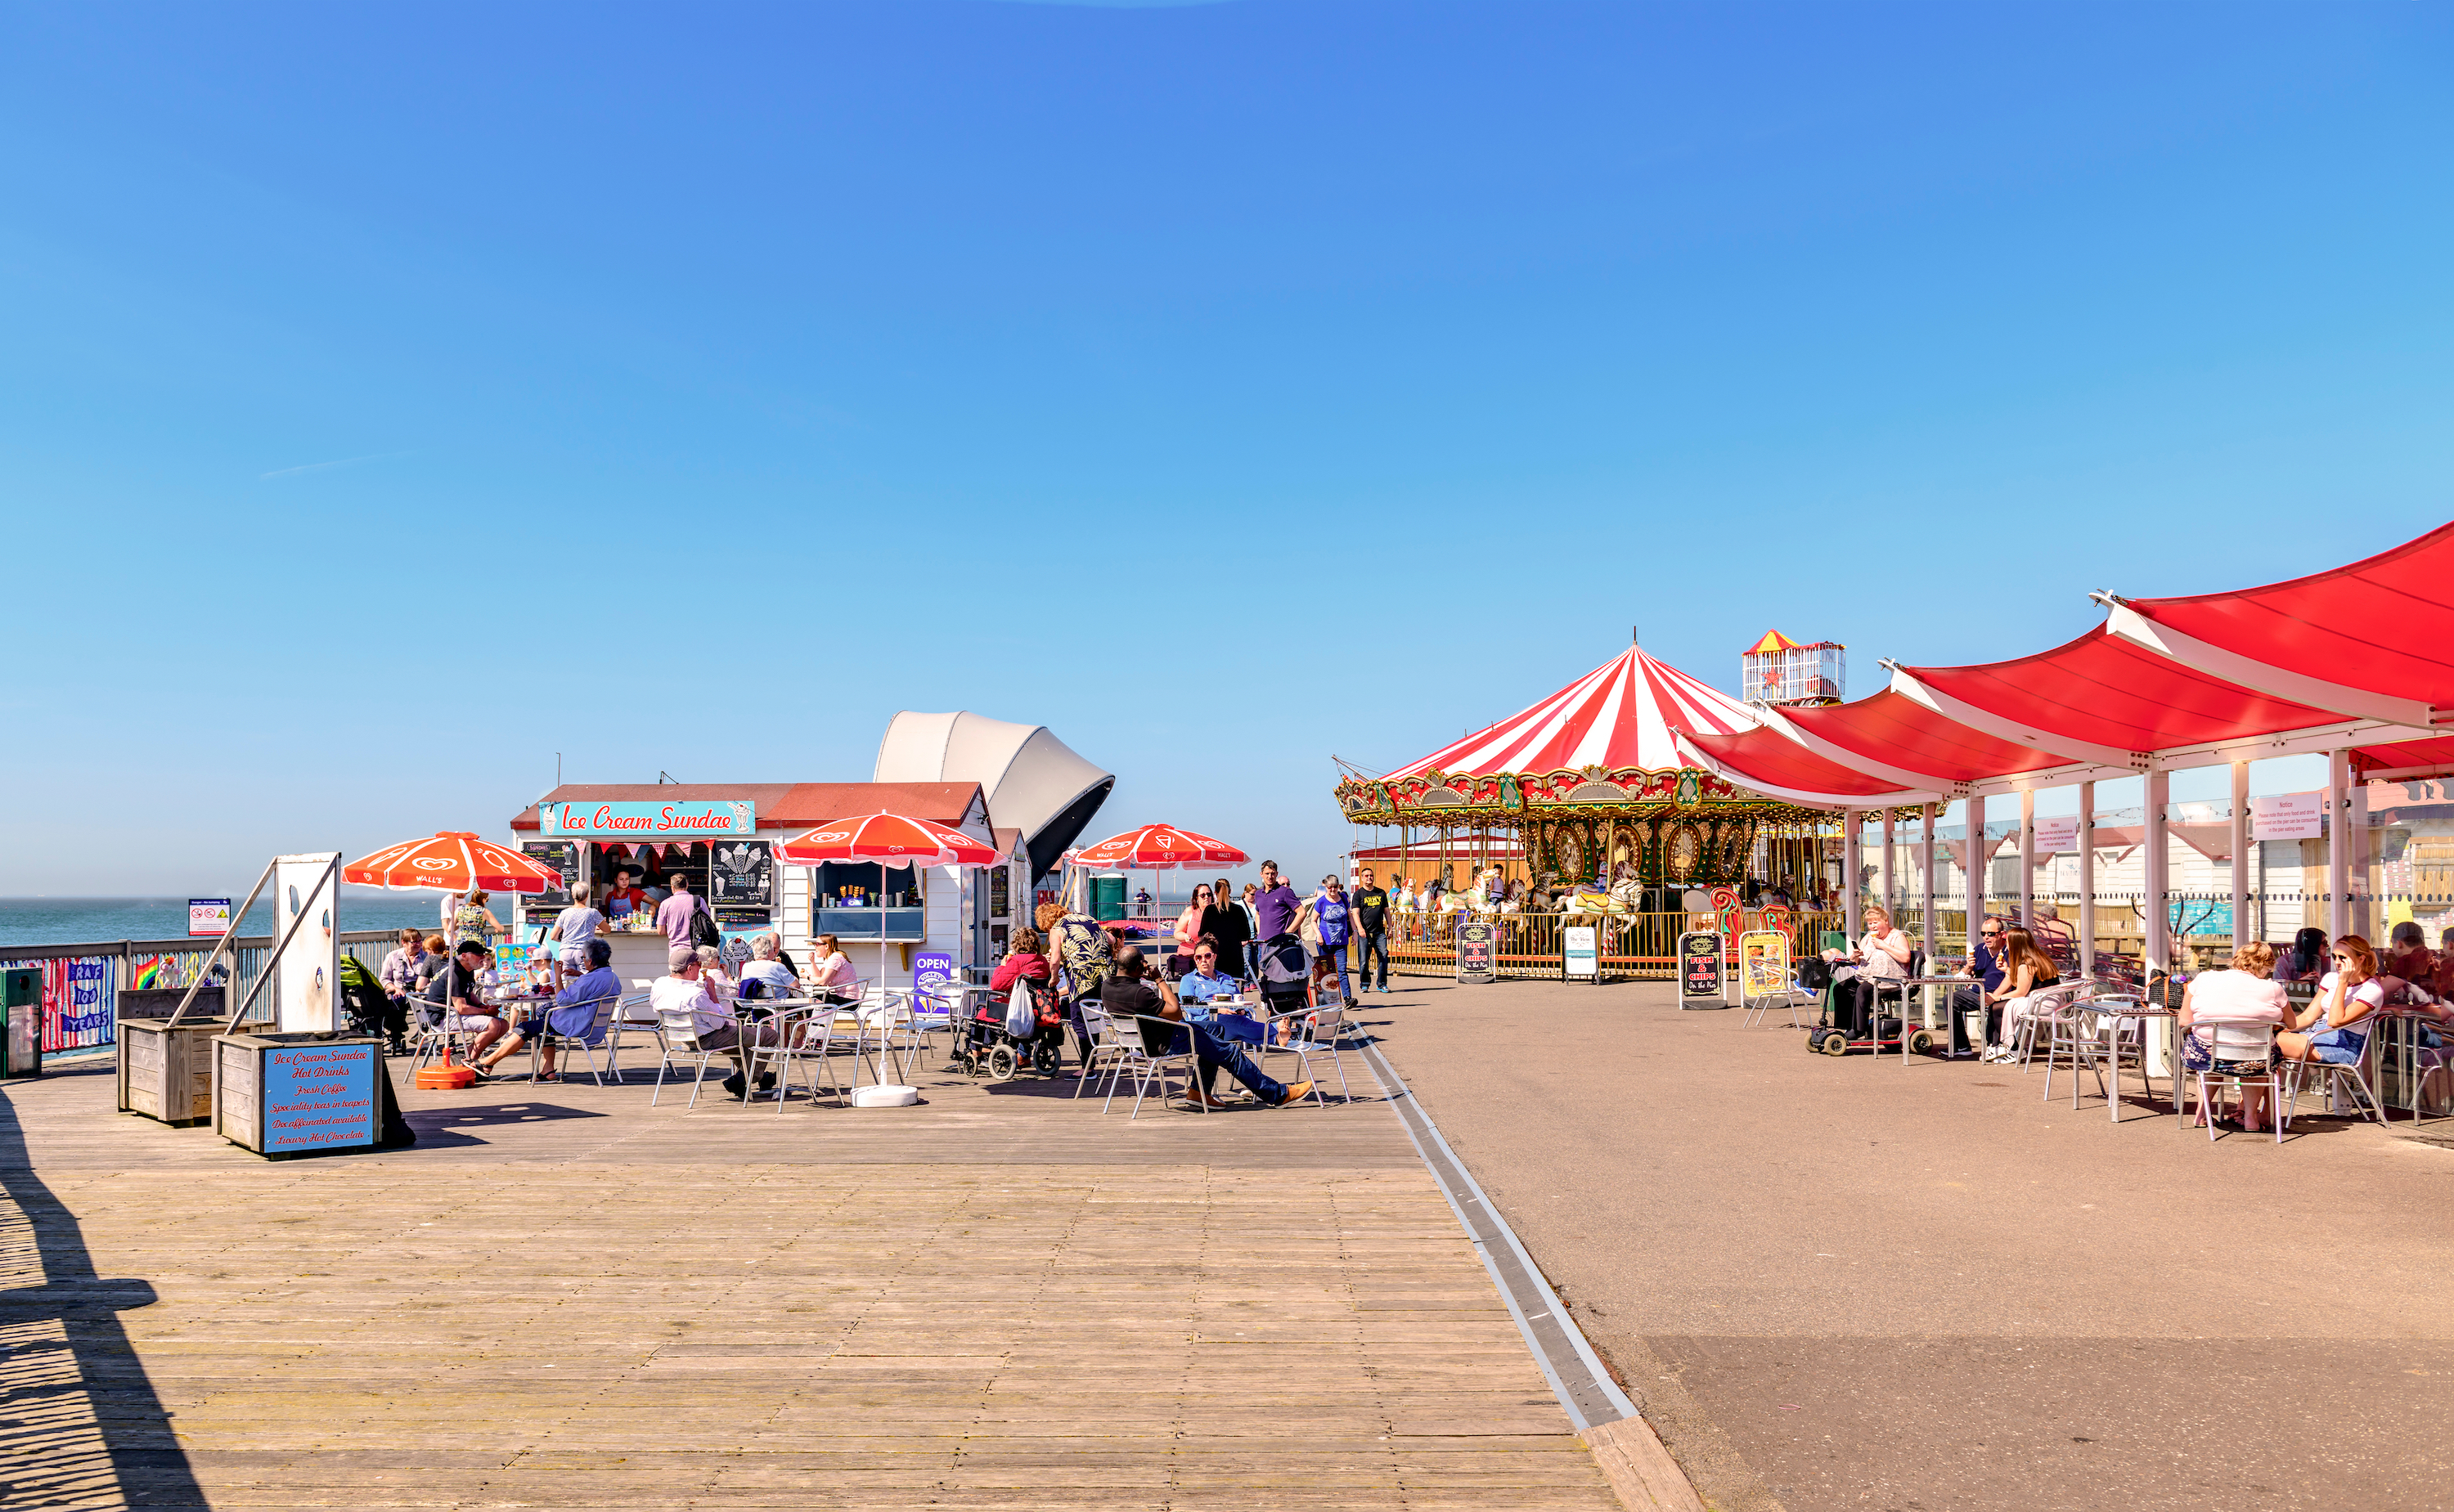 Herne Bay, Kent, UK. Children's entertainment and outdoor eating on the pier